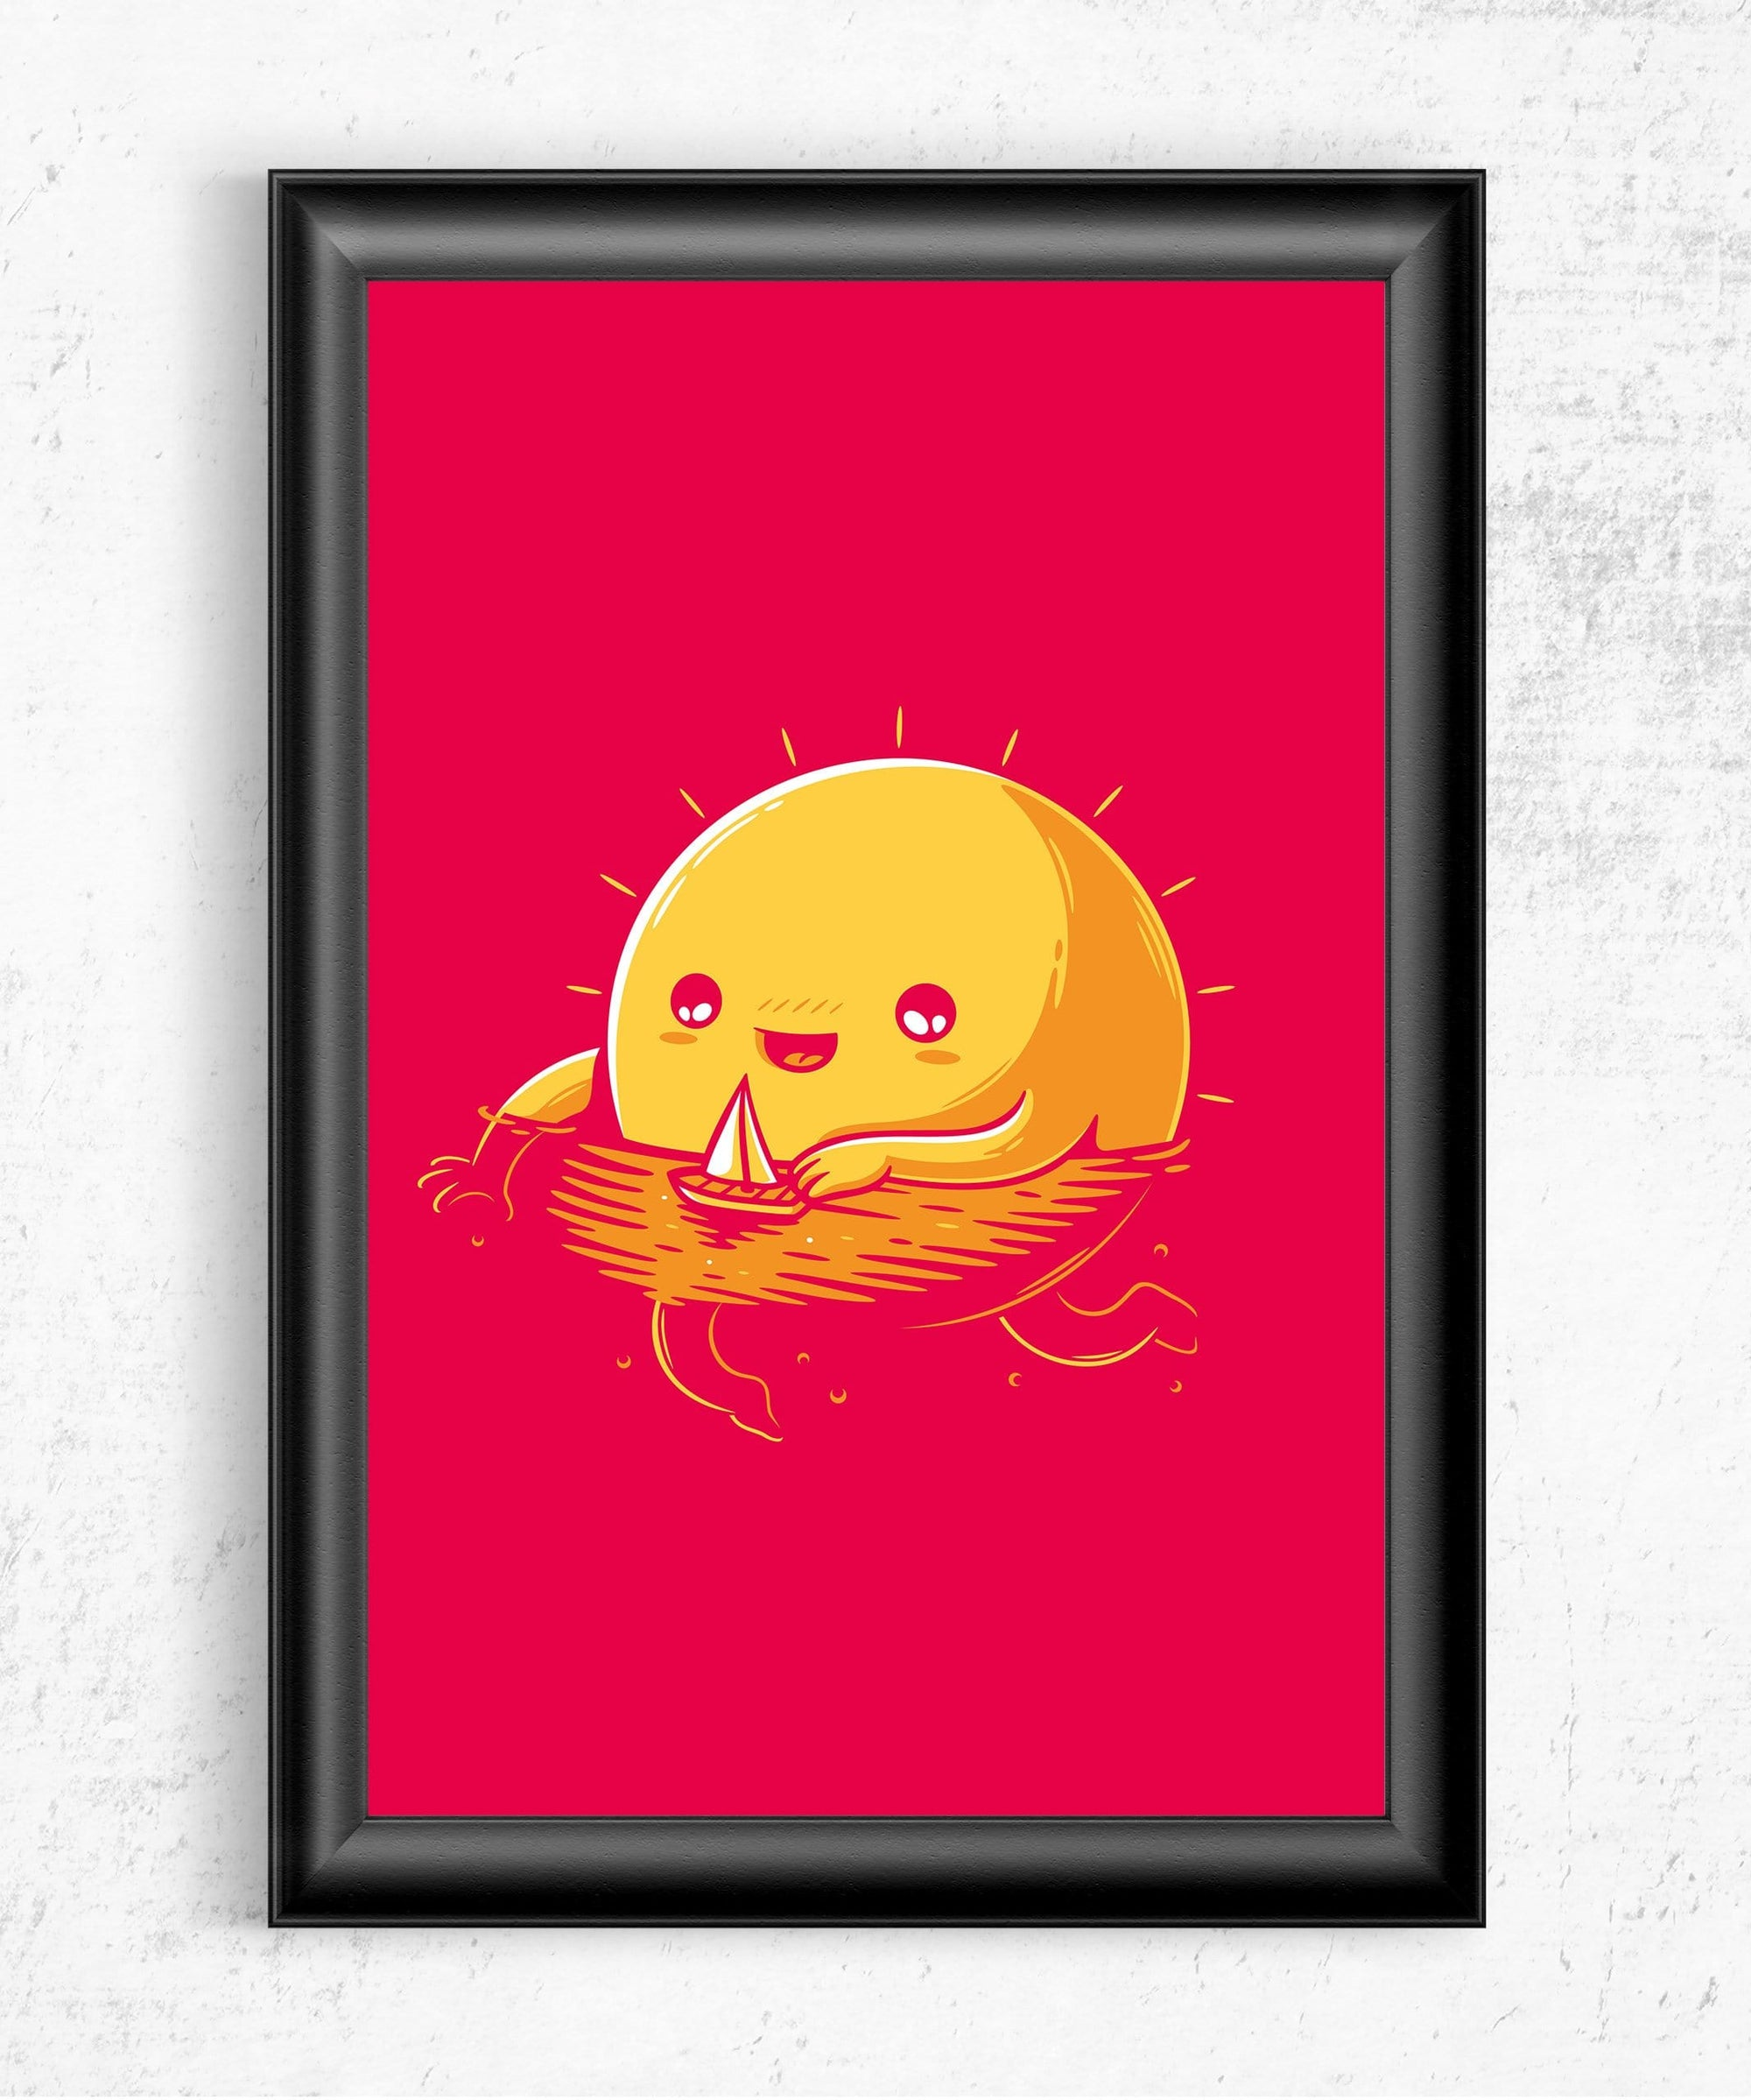 A Summer Mood Posters by Elia Colombo - Pixel Empire